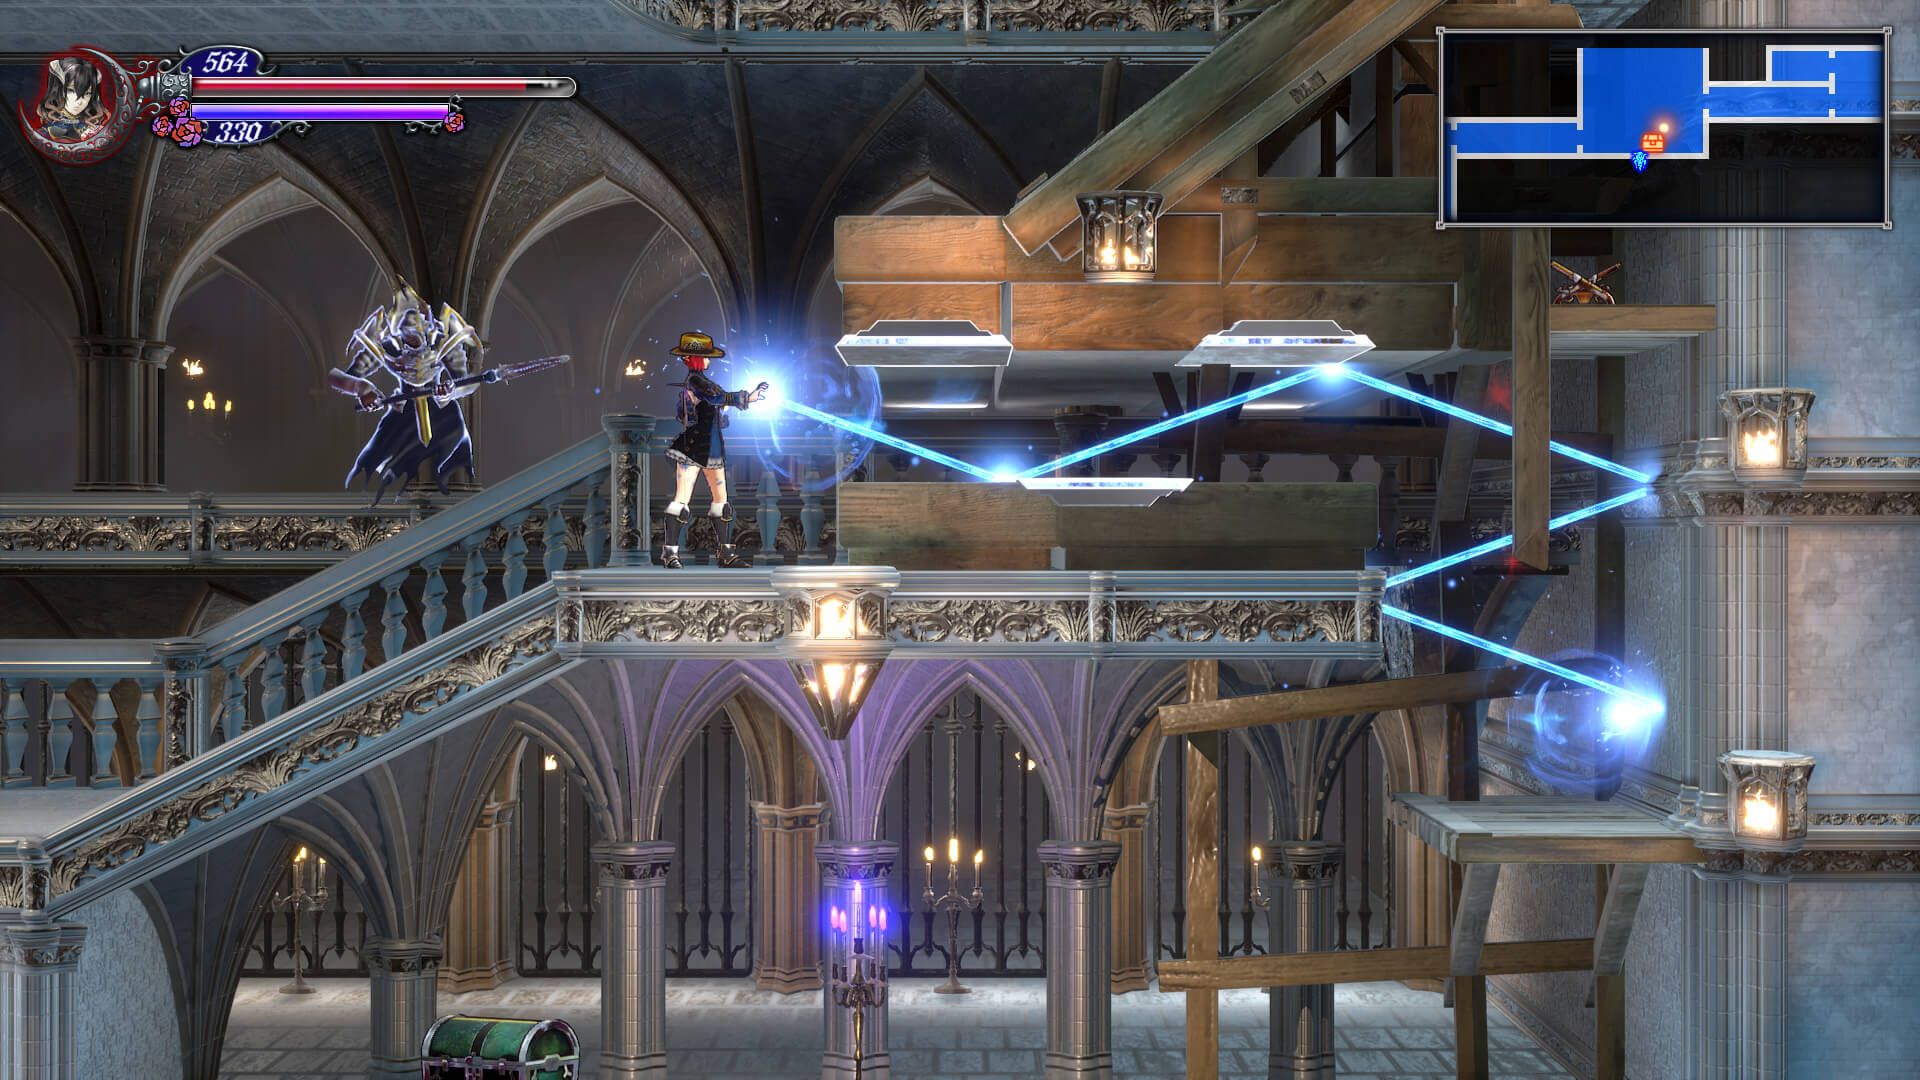 Bloodstained Ritual of the Night abilities